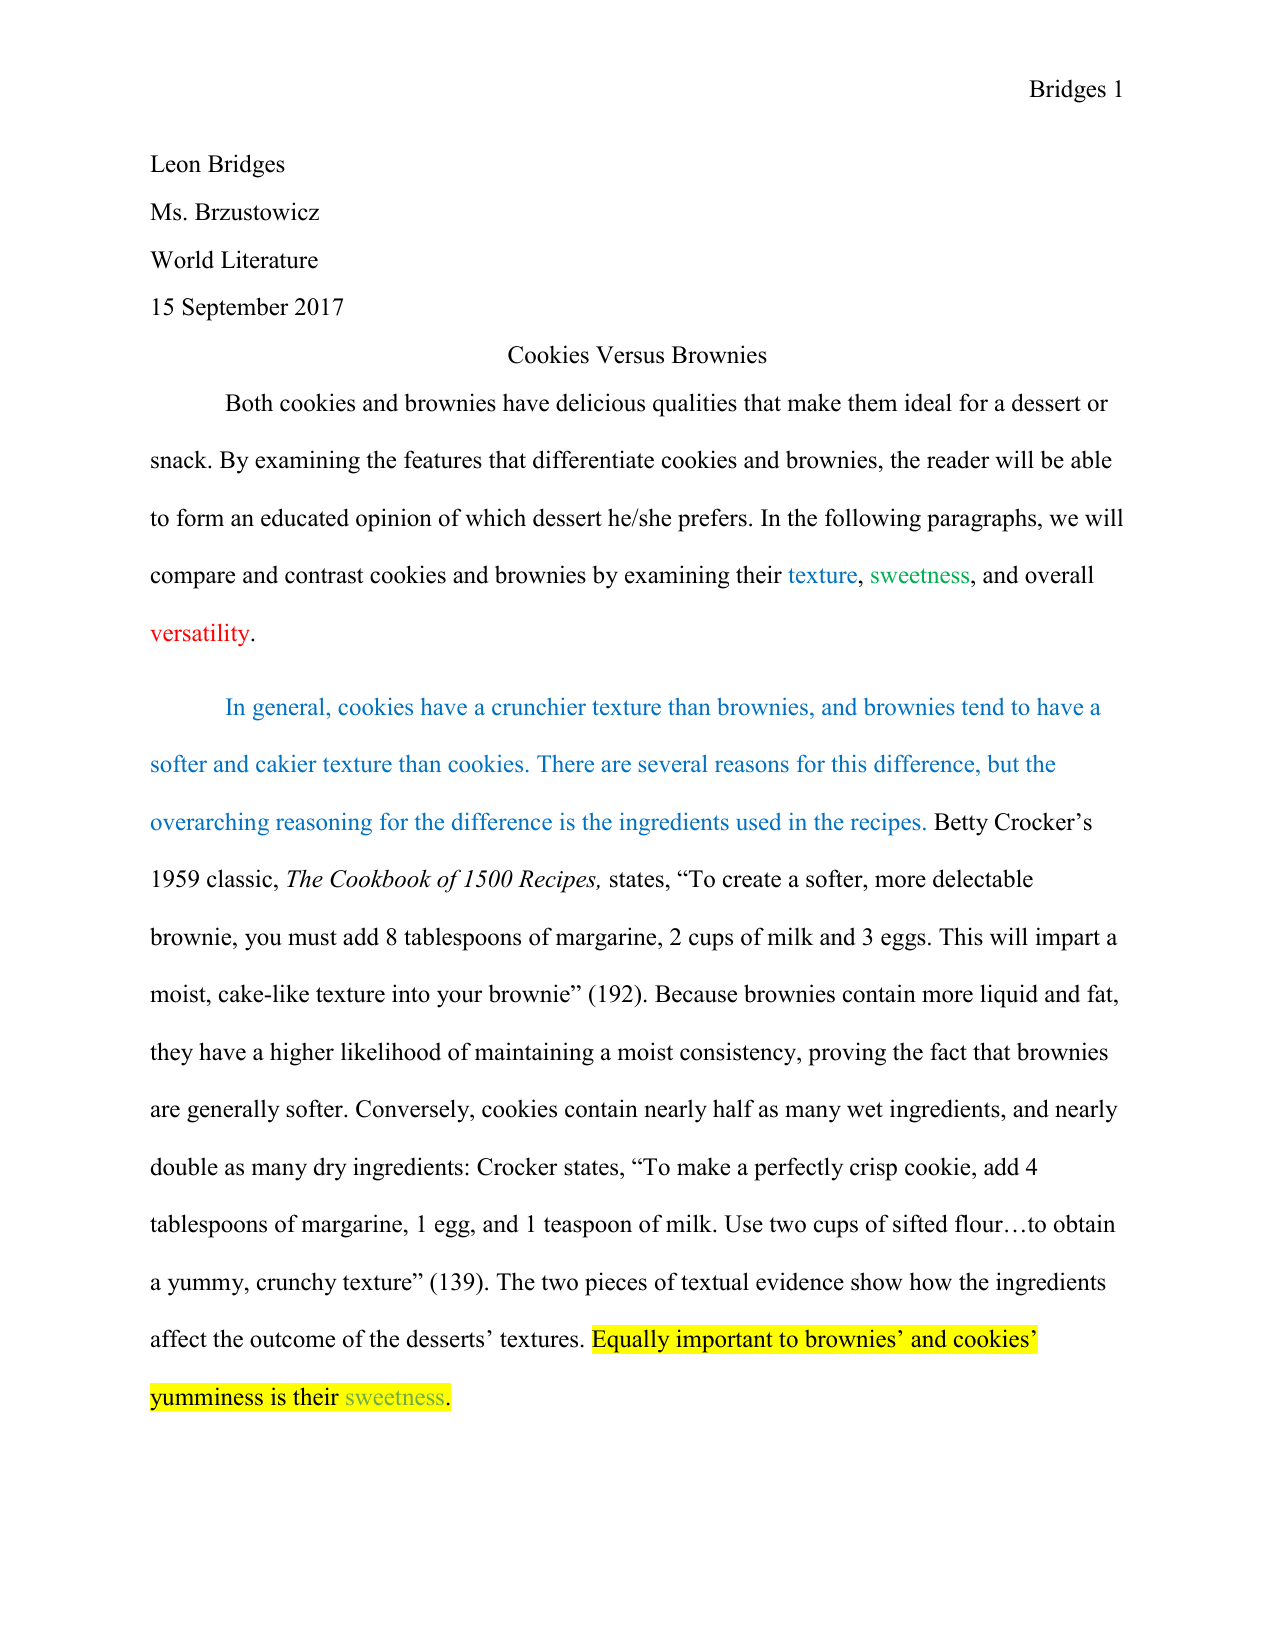 Cues to quality in quantitative research papers